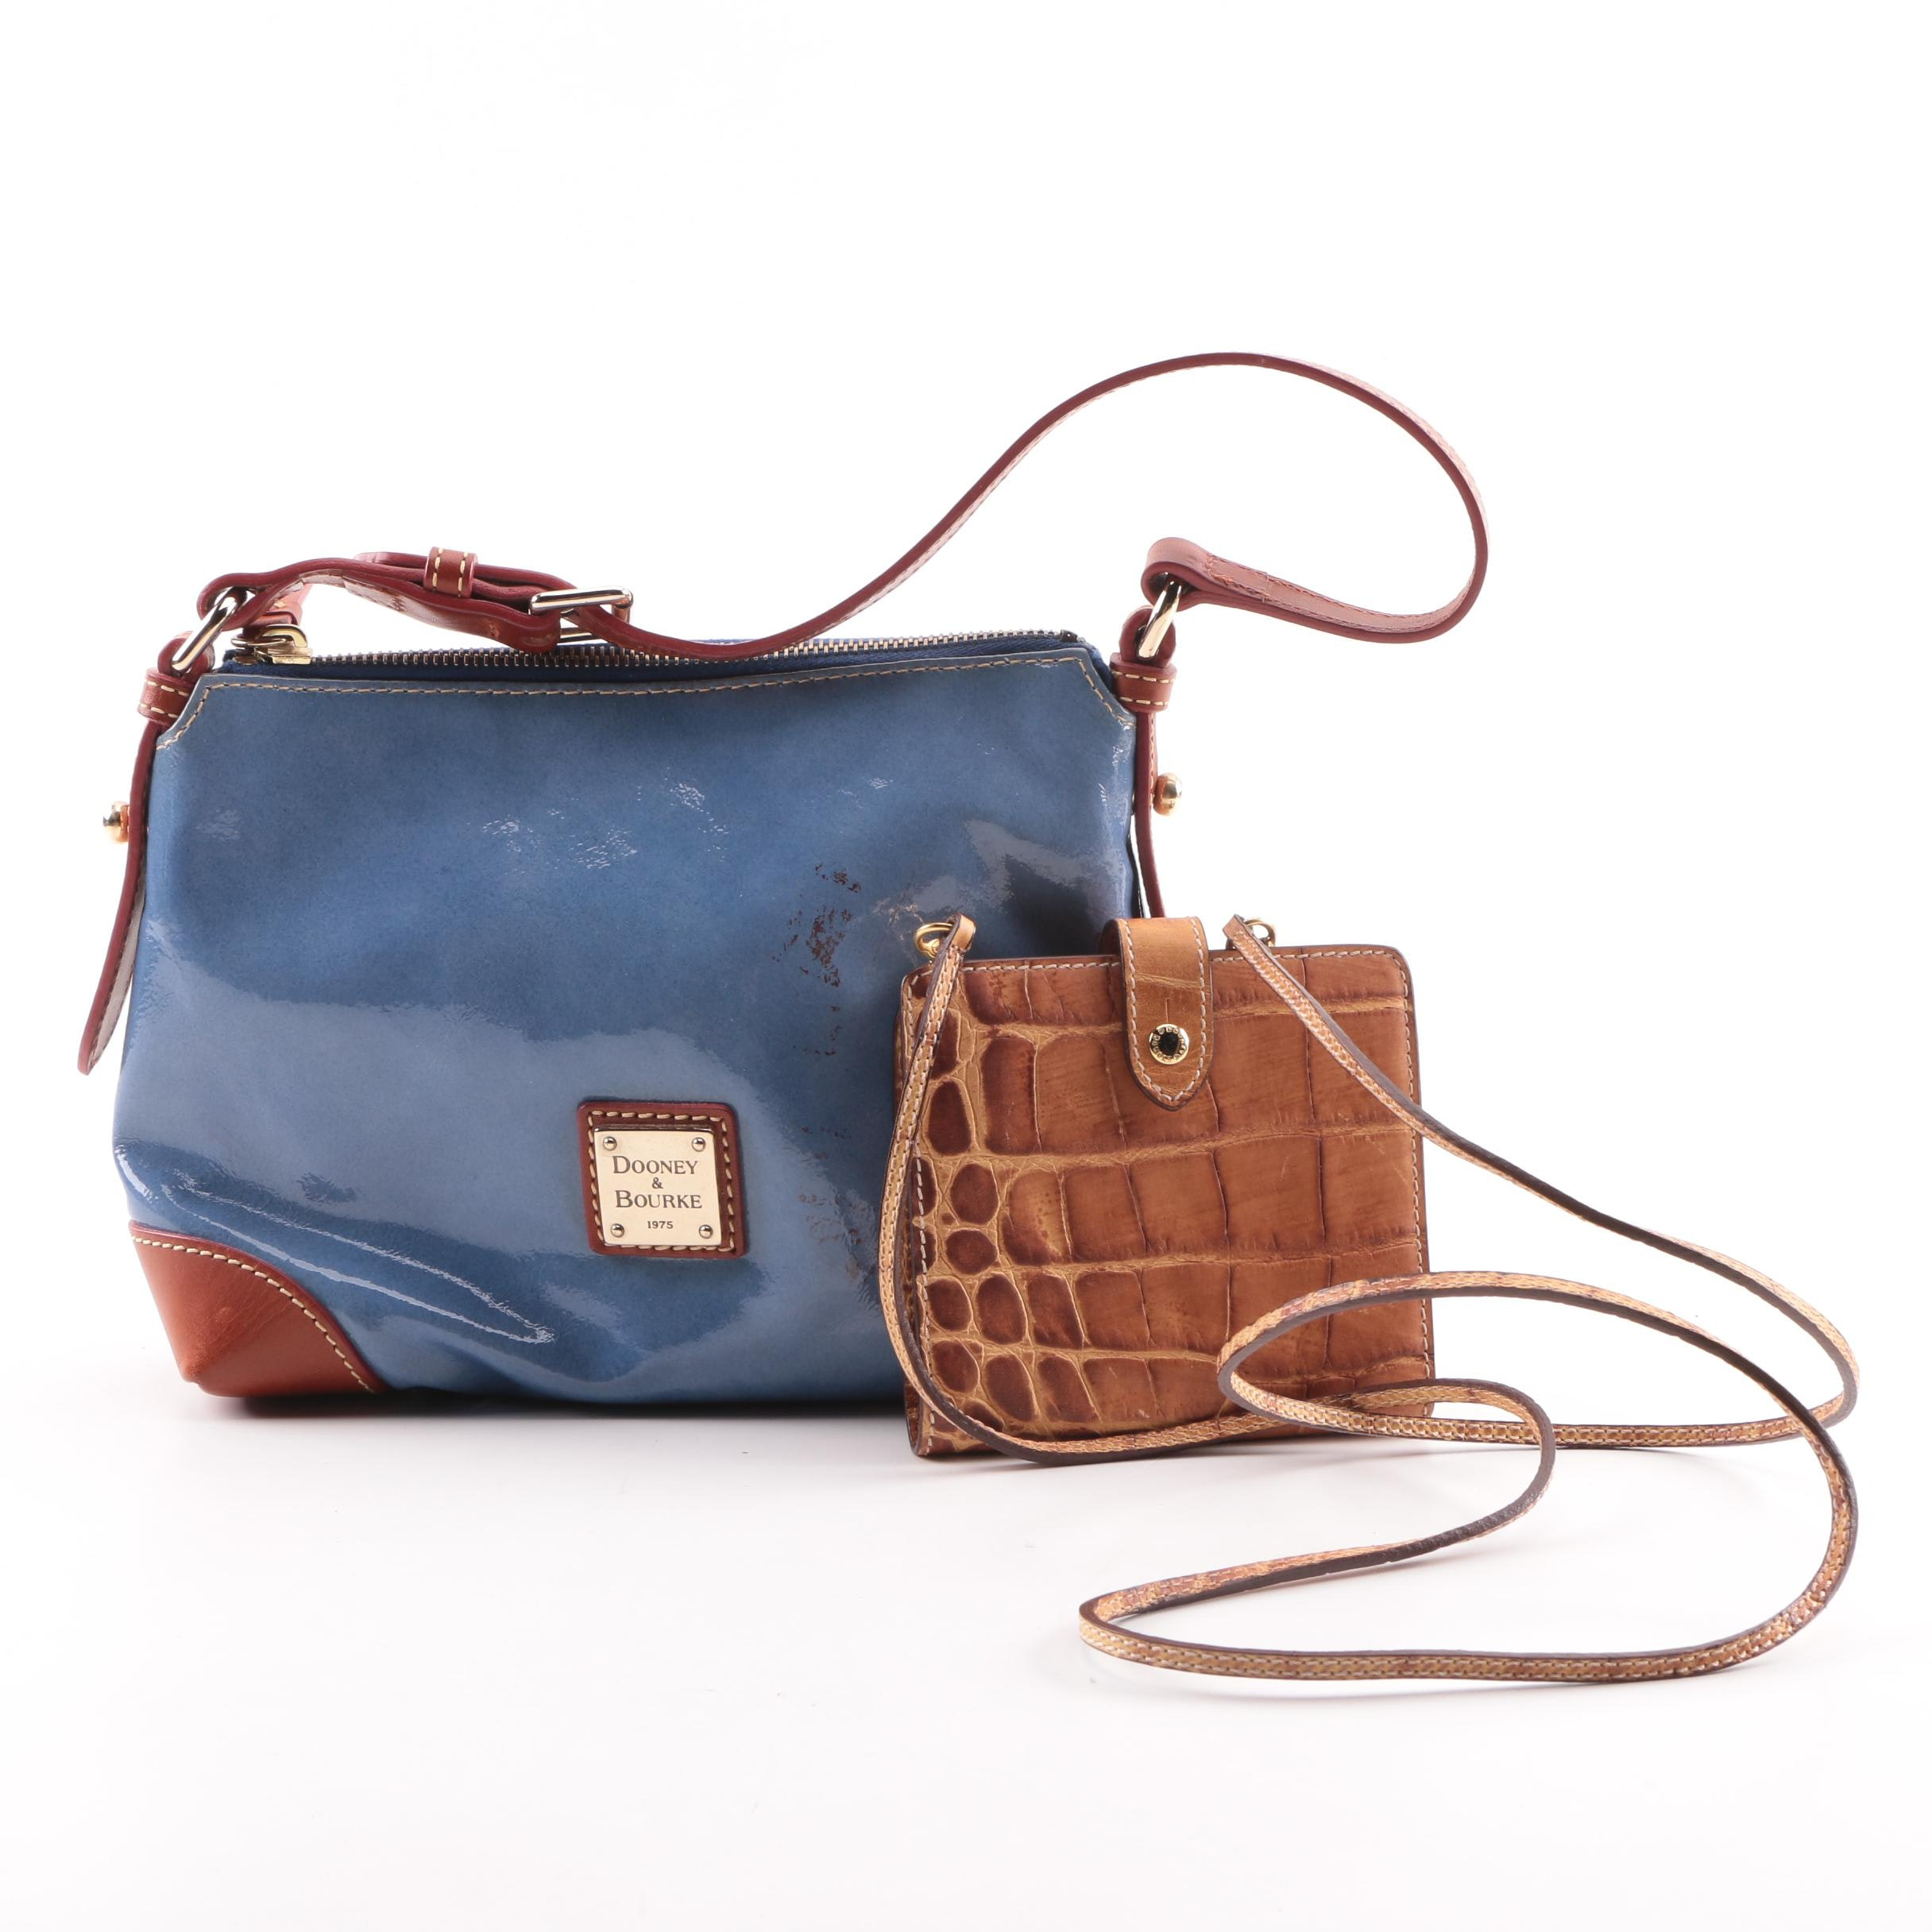 Dooney & Bourke Blue Patent Leather Bag and Embossed Leather Crossbody Wallet